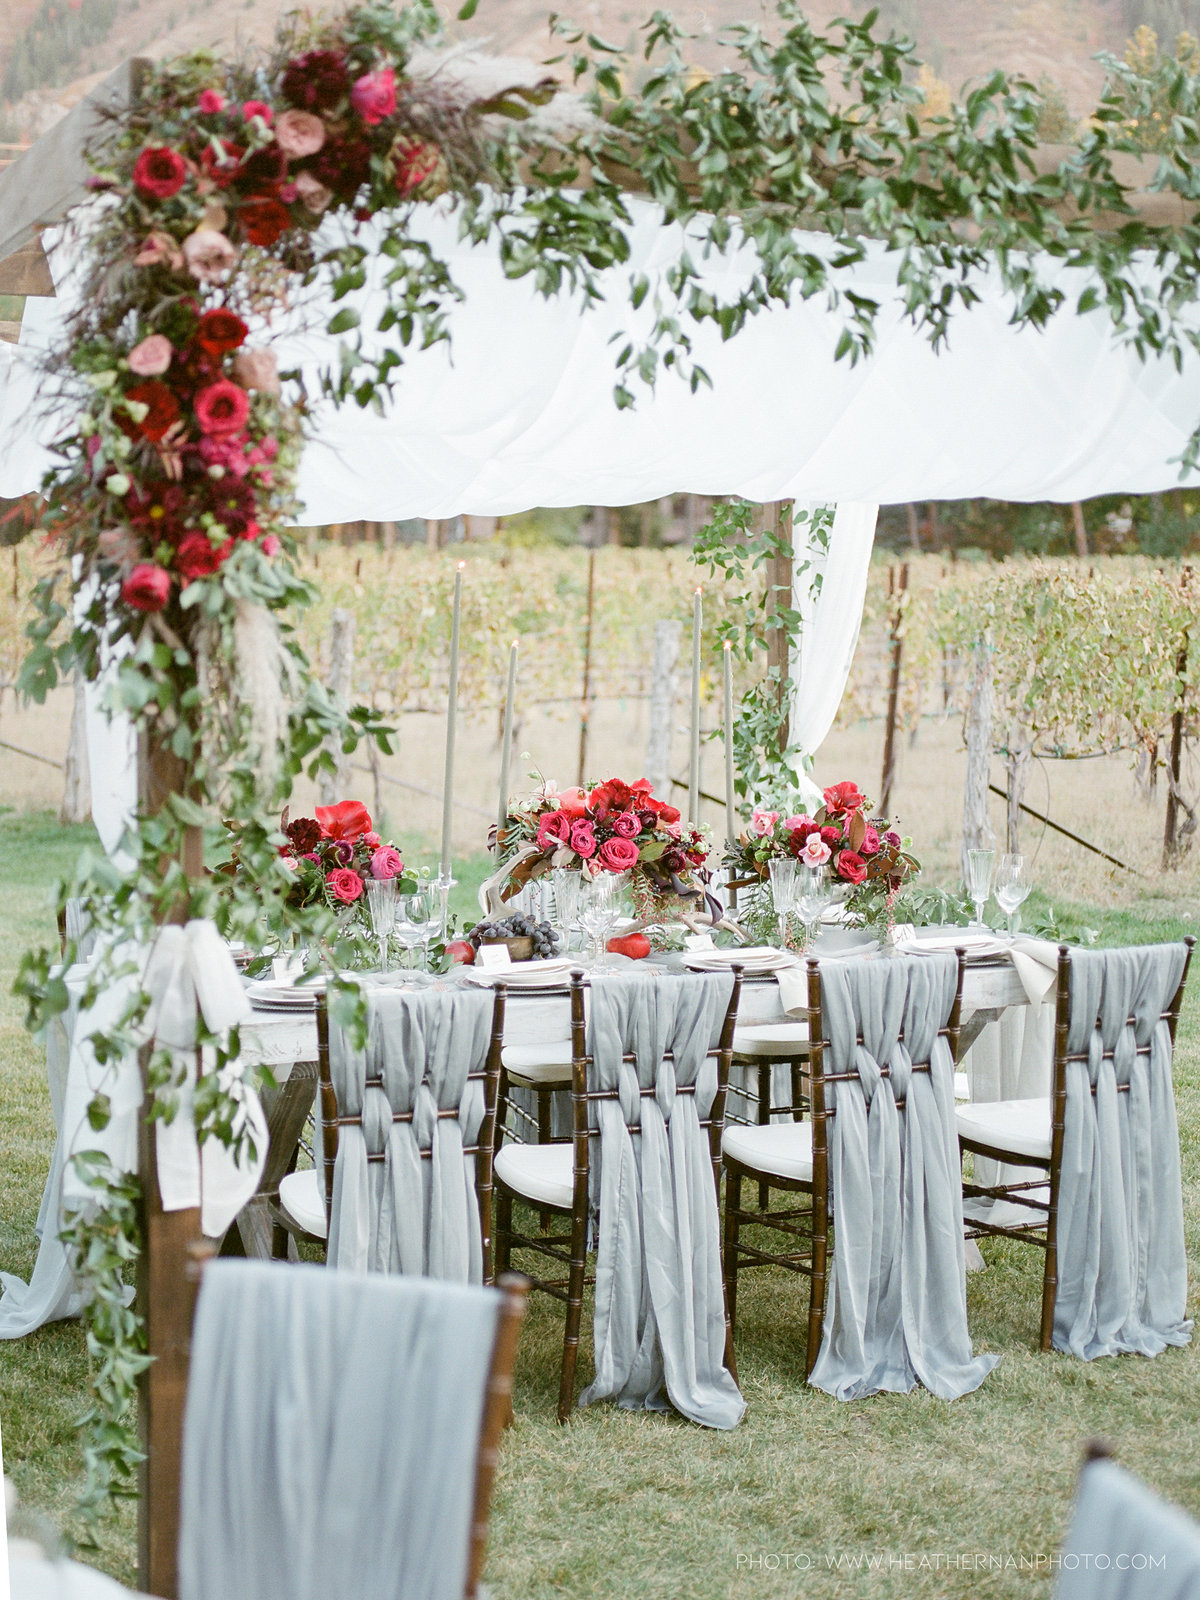 Utah Florist_Romantic Vineyard Wedding_Red Wedding Ideas-0158